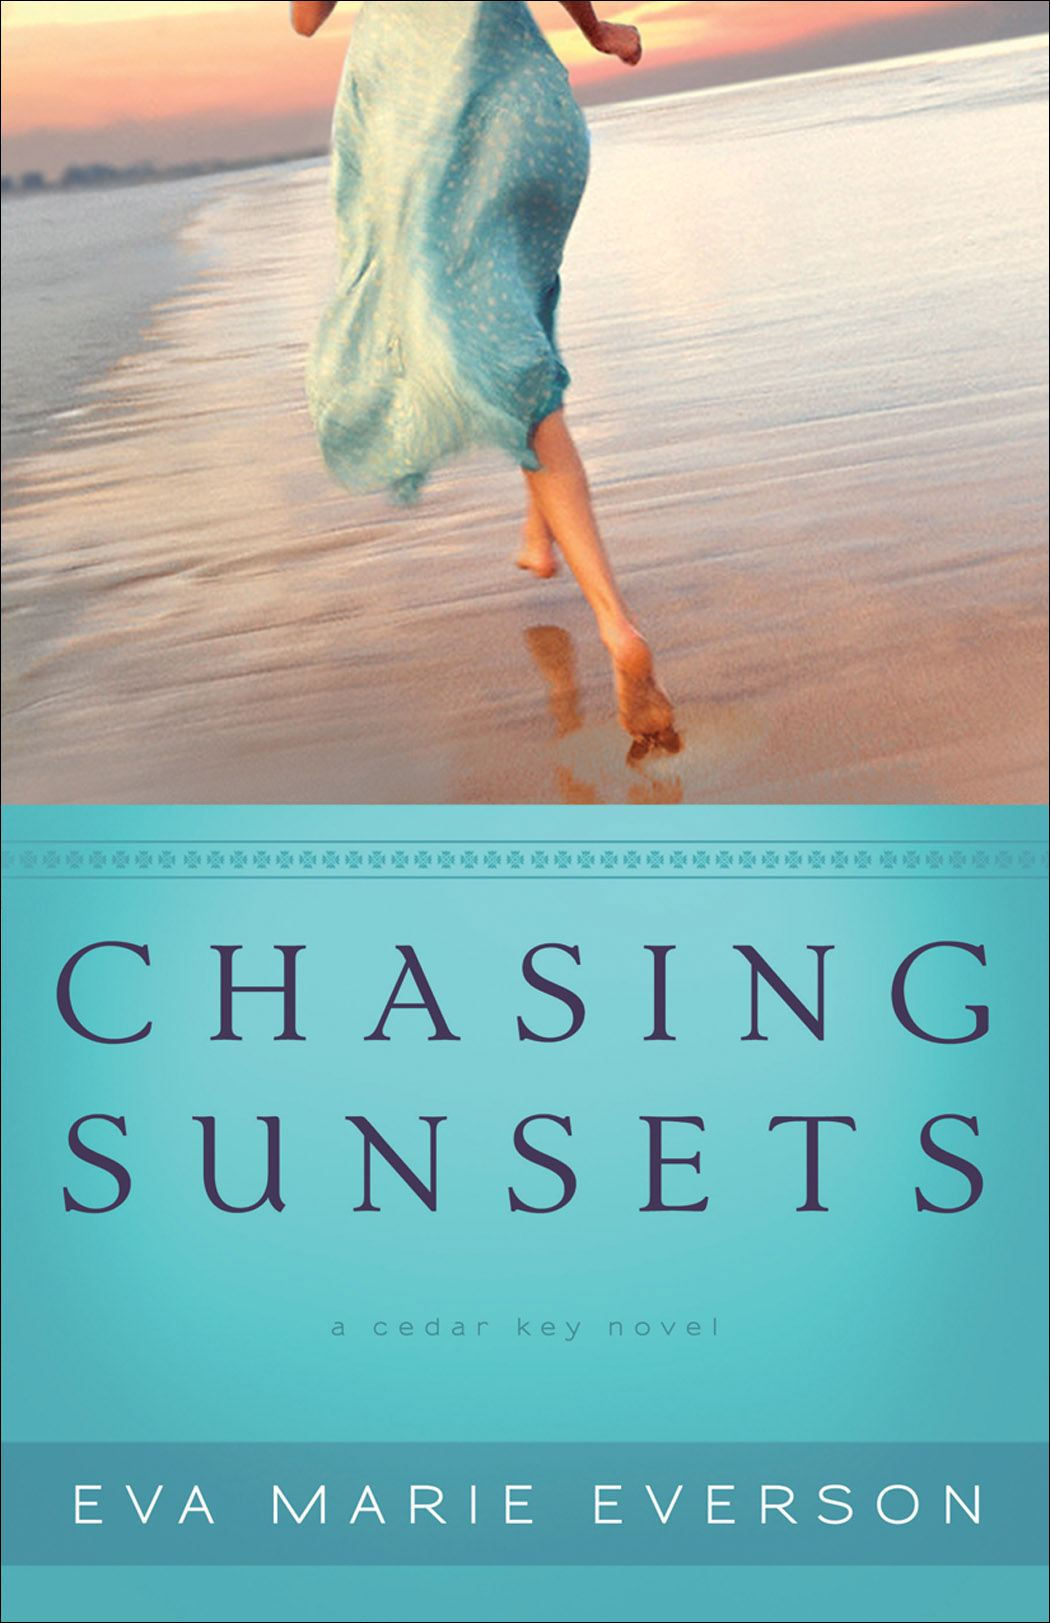 Chasing Sunsets (The Cedar Key Series Book #1) By: Eva Marie Everson